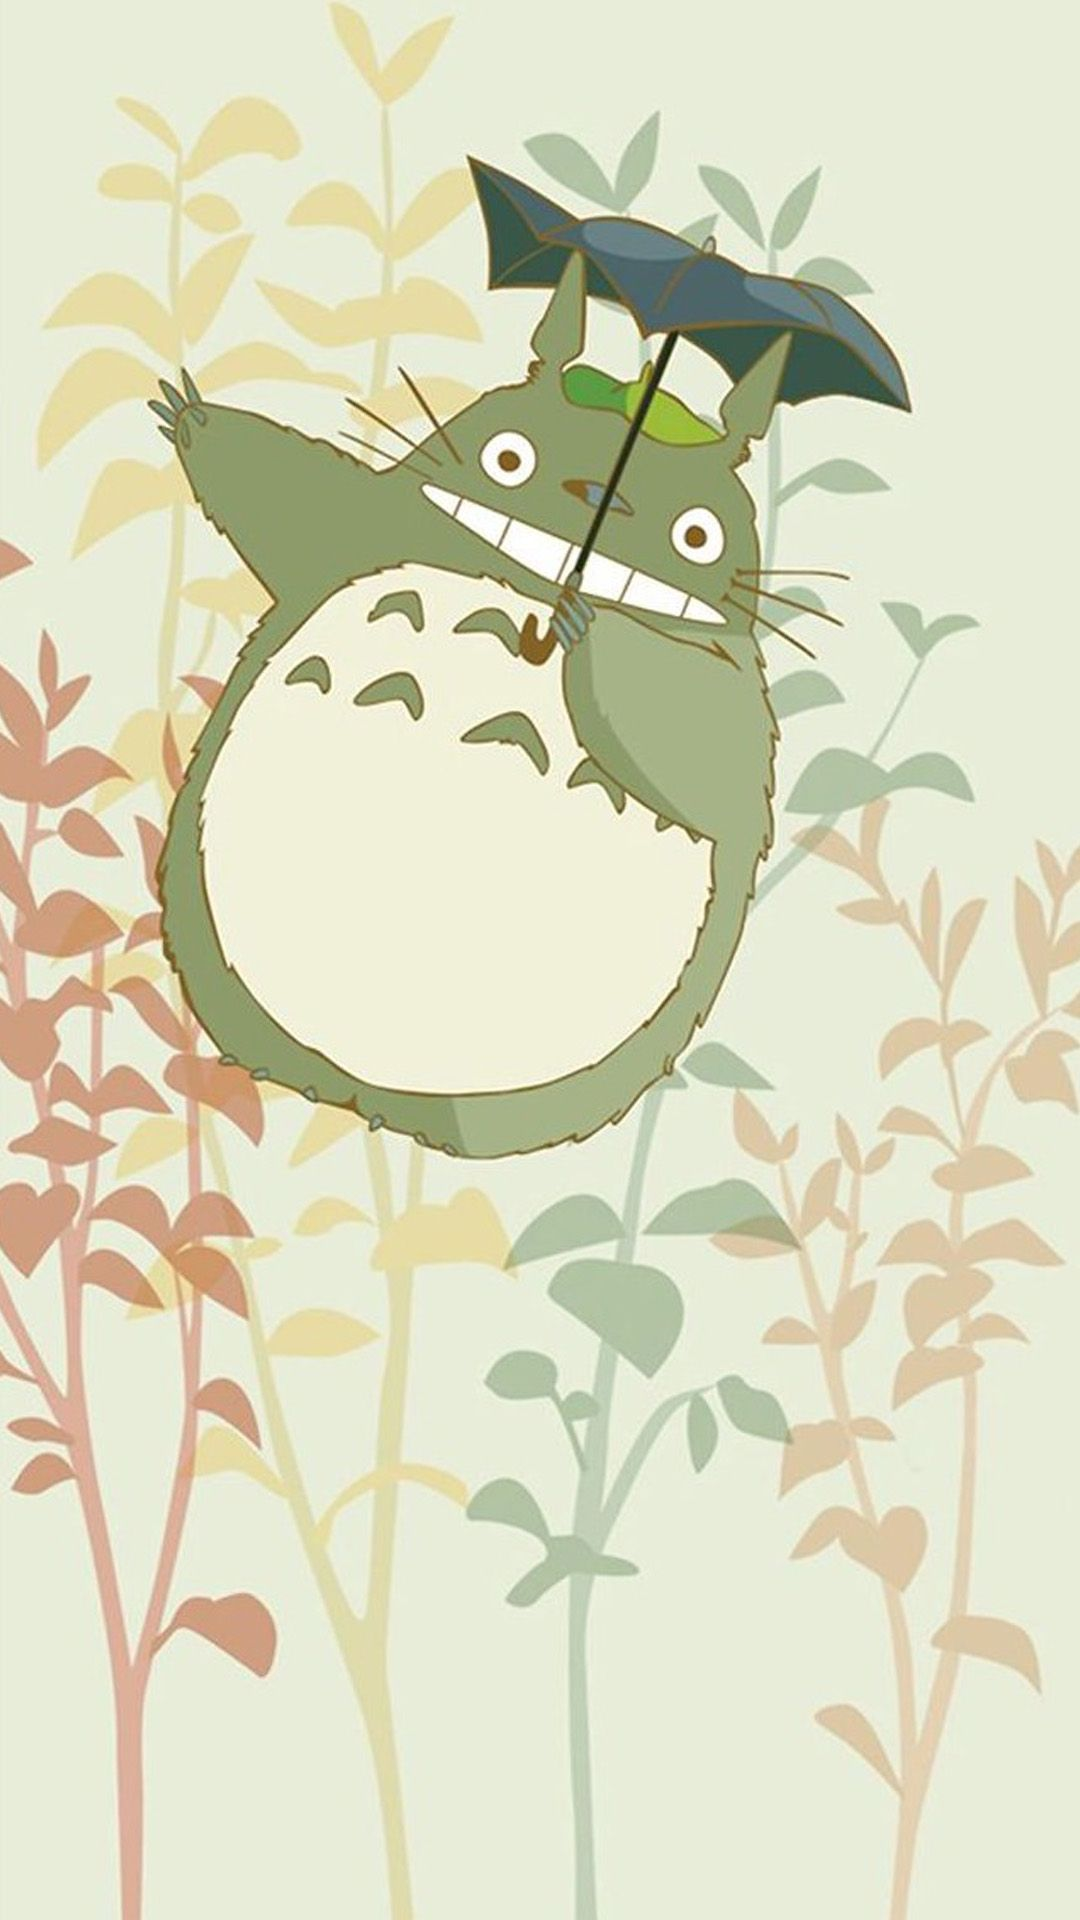 Cute My Neighbor Totoro iPhone 6 wallpaper Totoro art